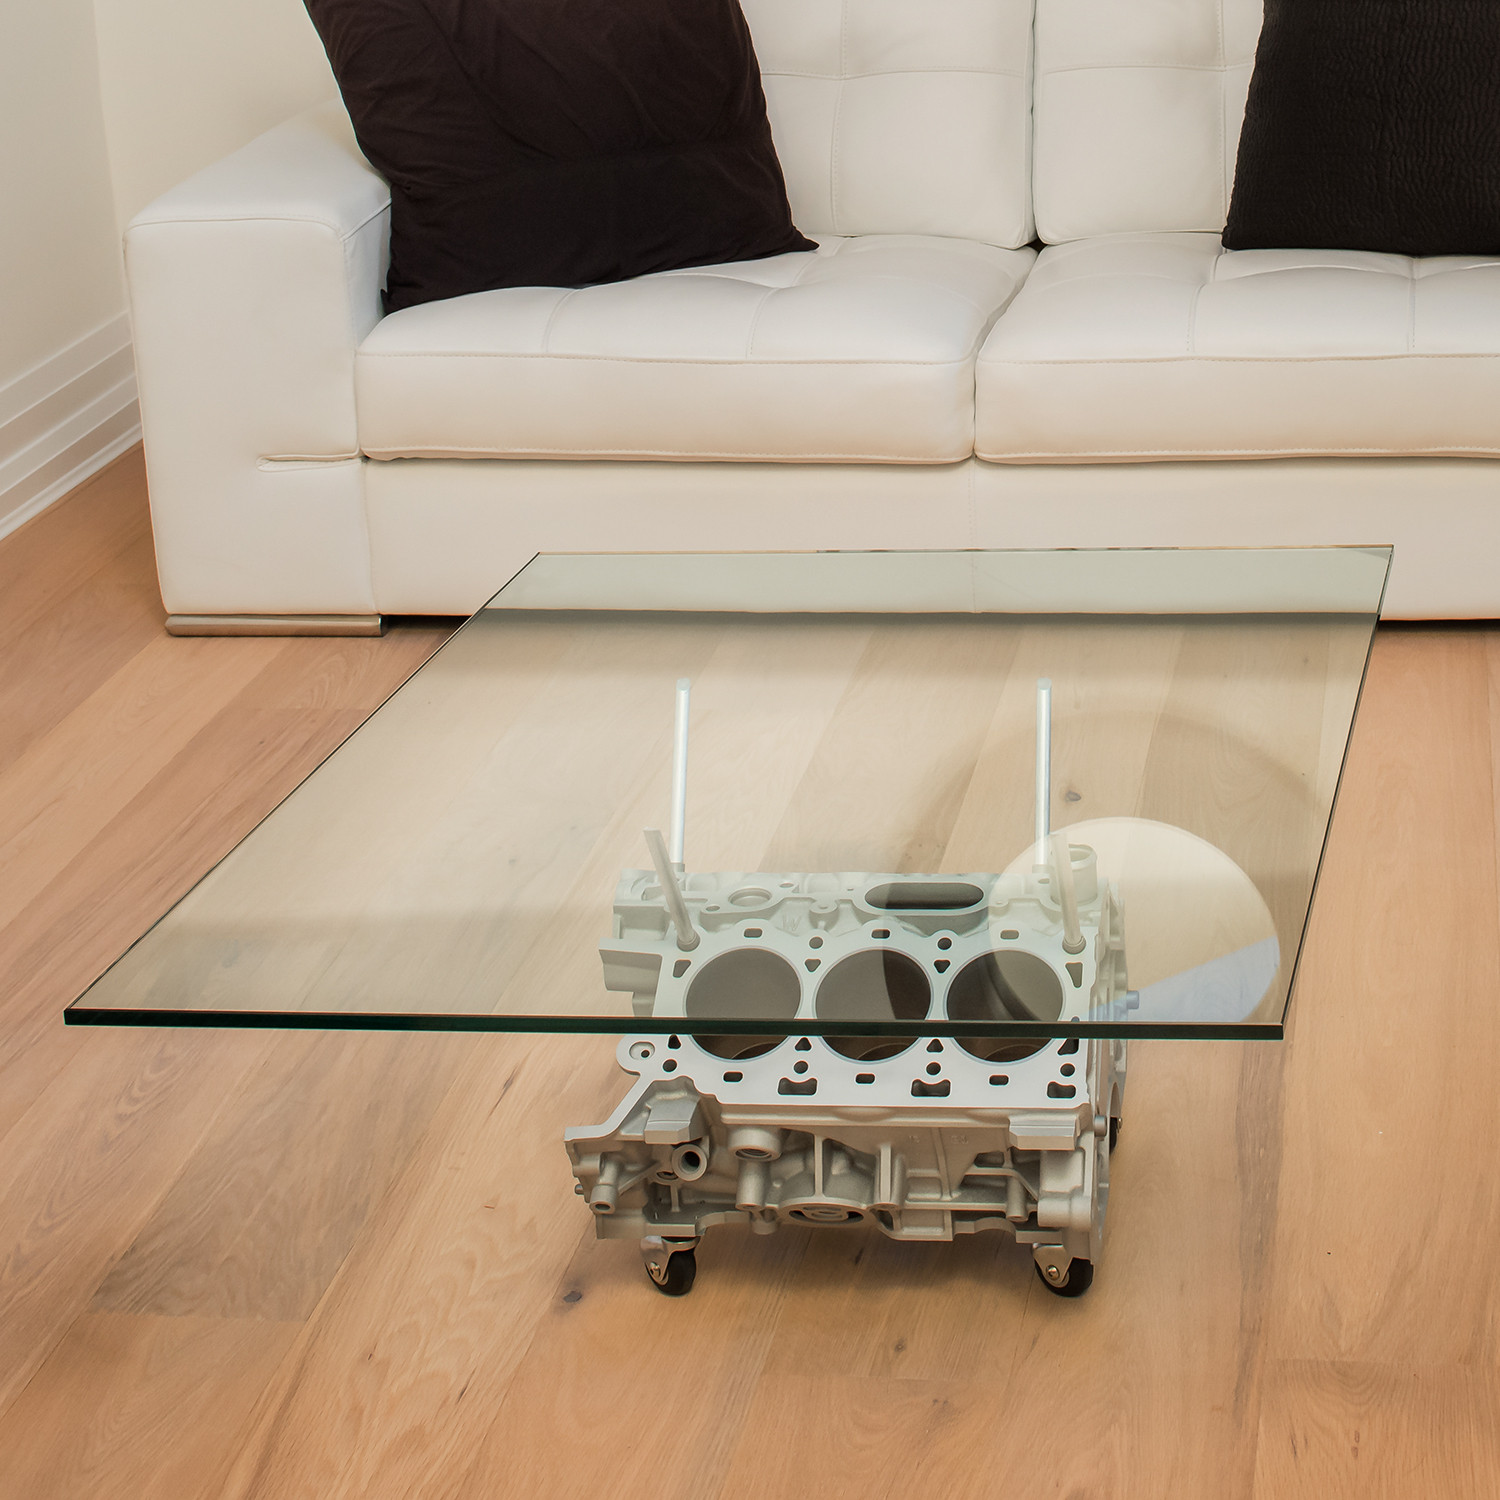 Rl Craft Engine Coffee Tables Touch of Modern